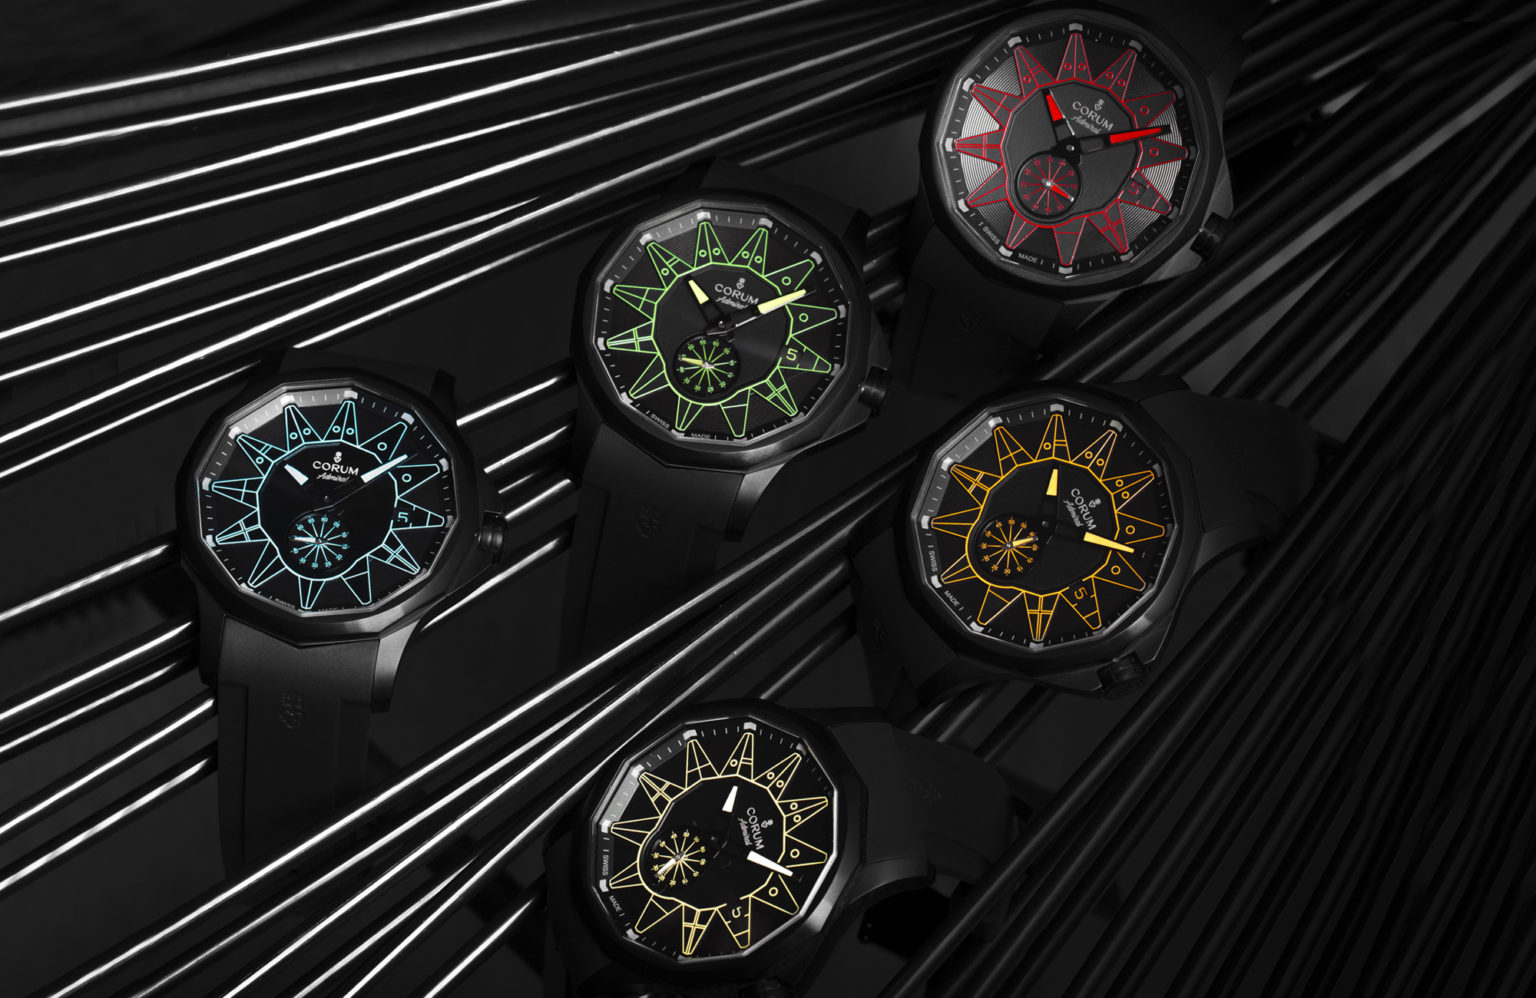 The Corum Admiral 42 Automatic Gets a Colorful Twist